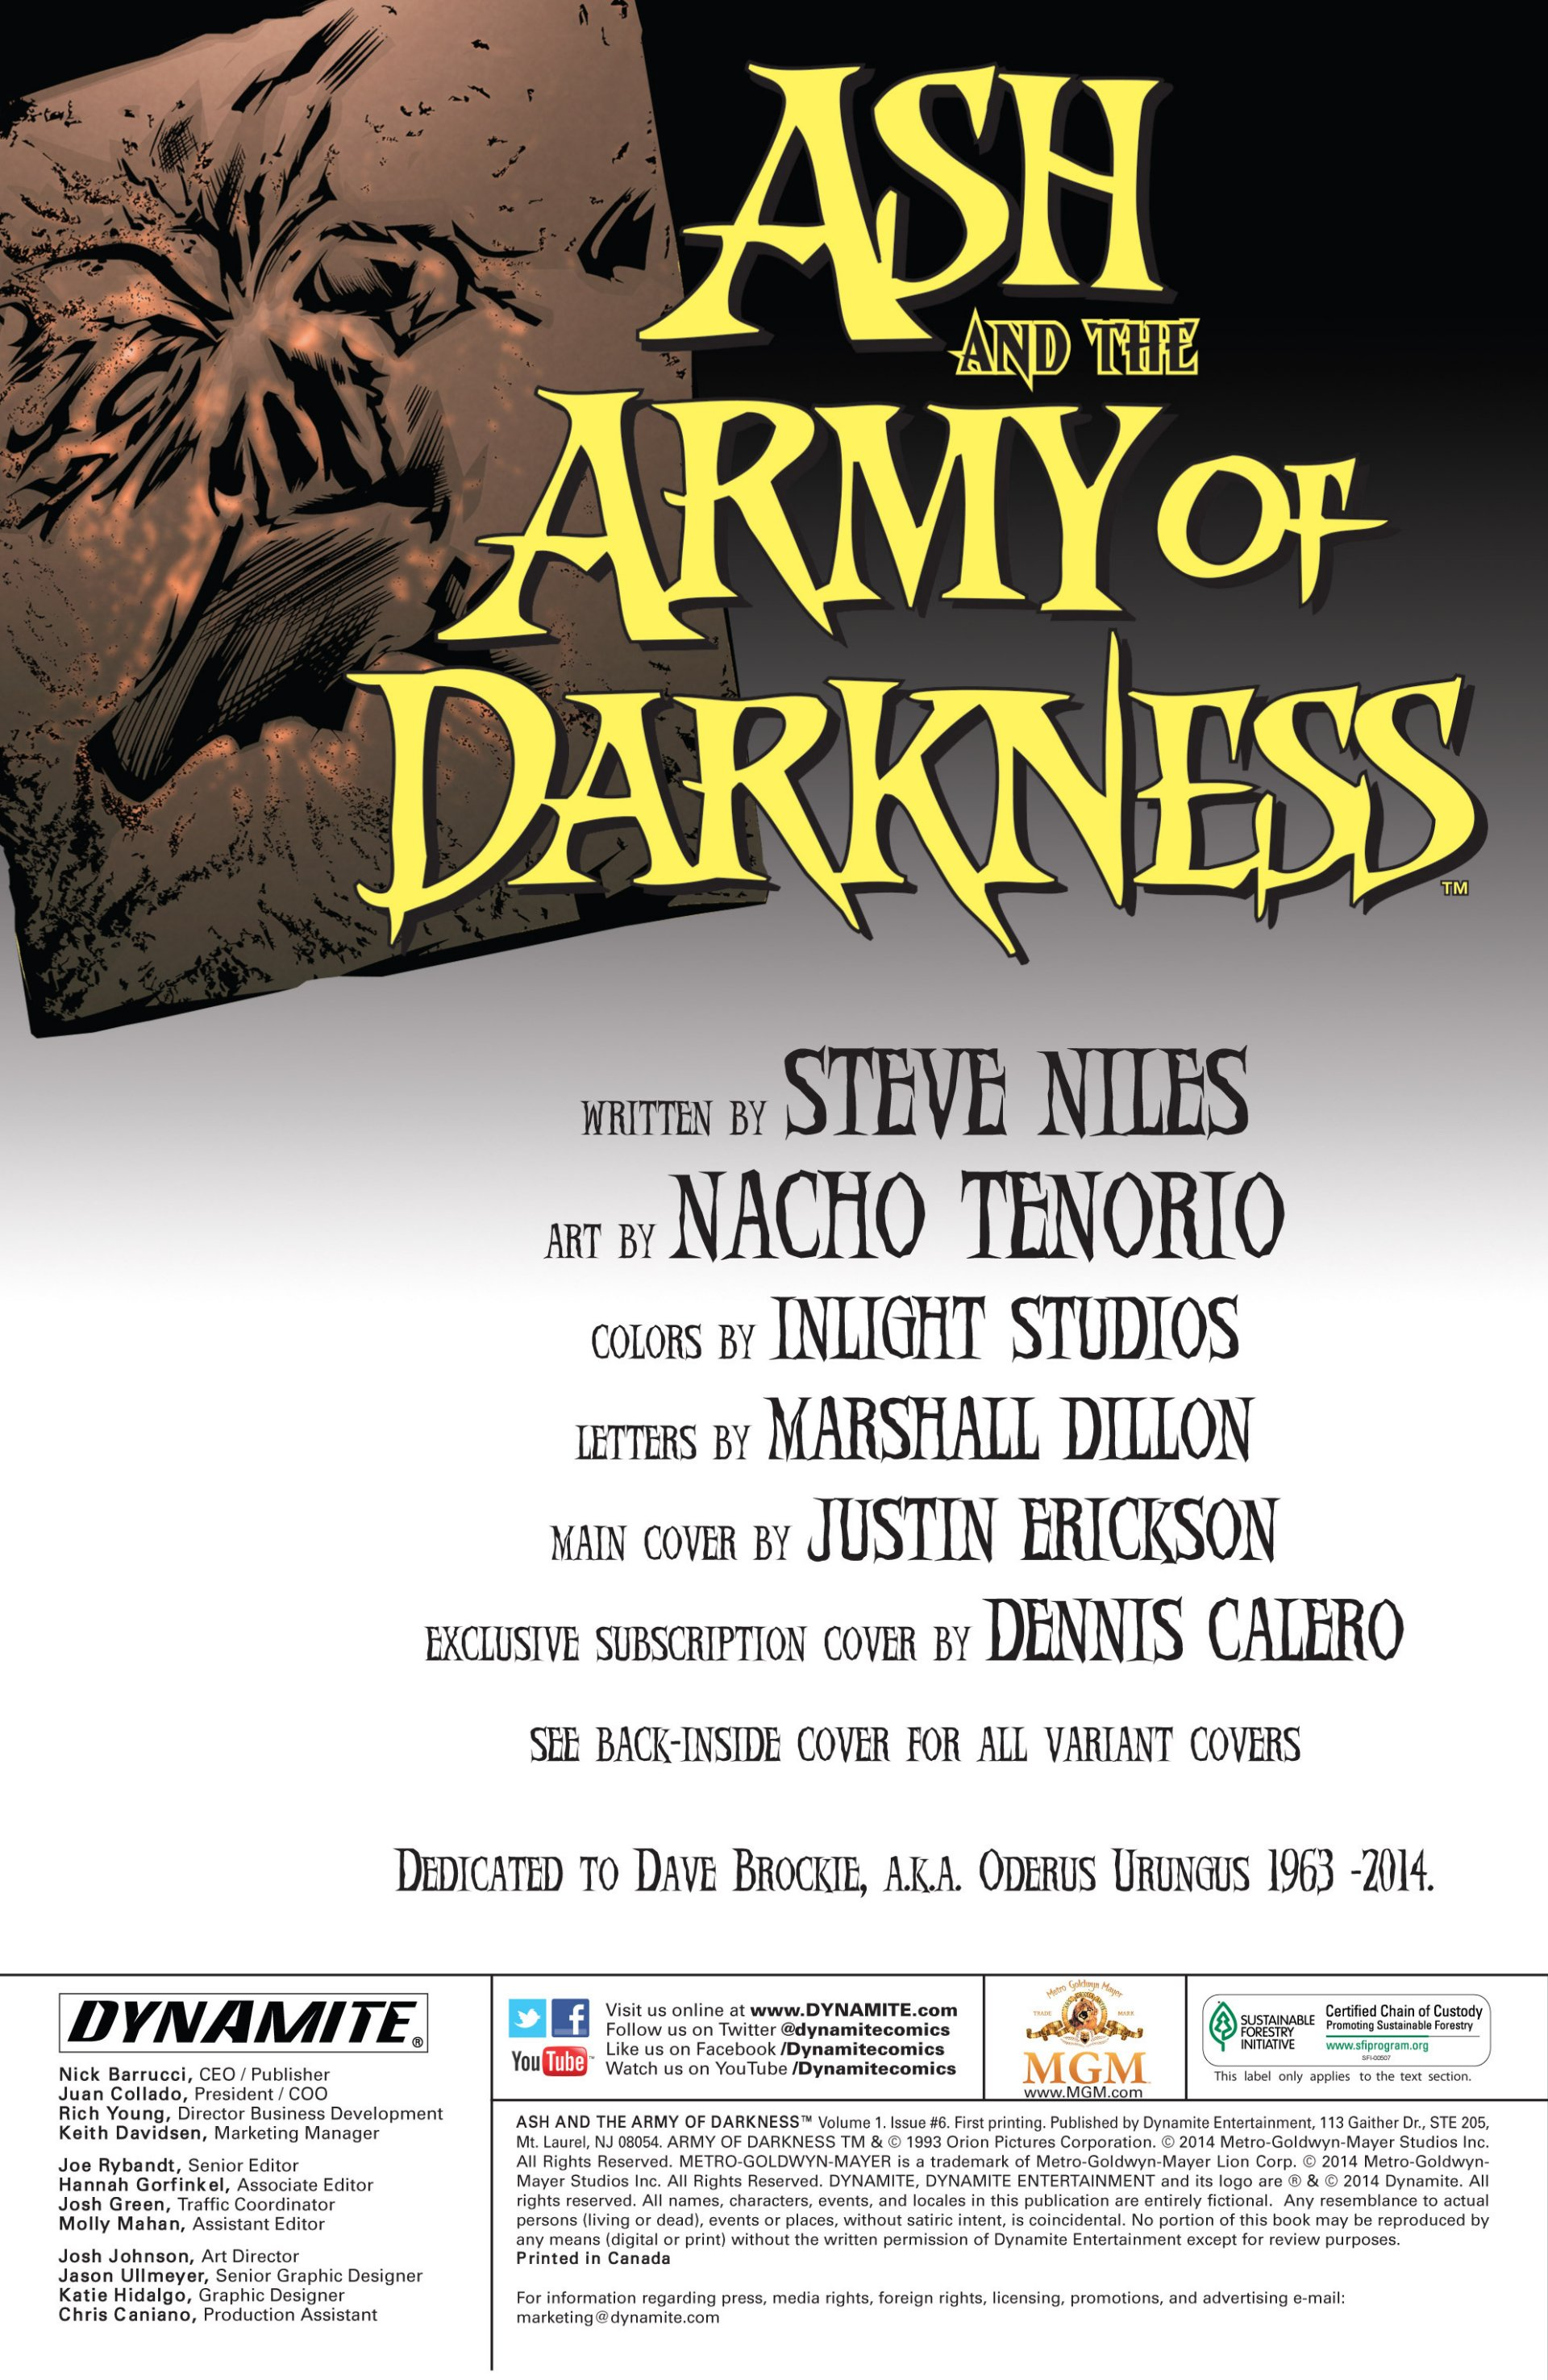 Read online Ash and the Army of Darkness comic -  Issue #6 - 2